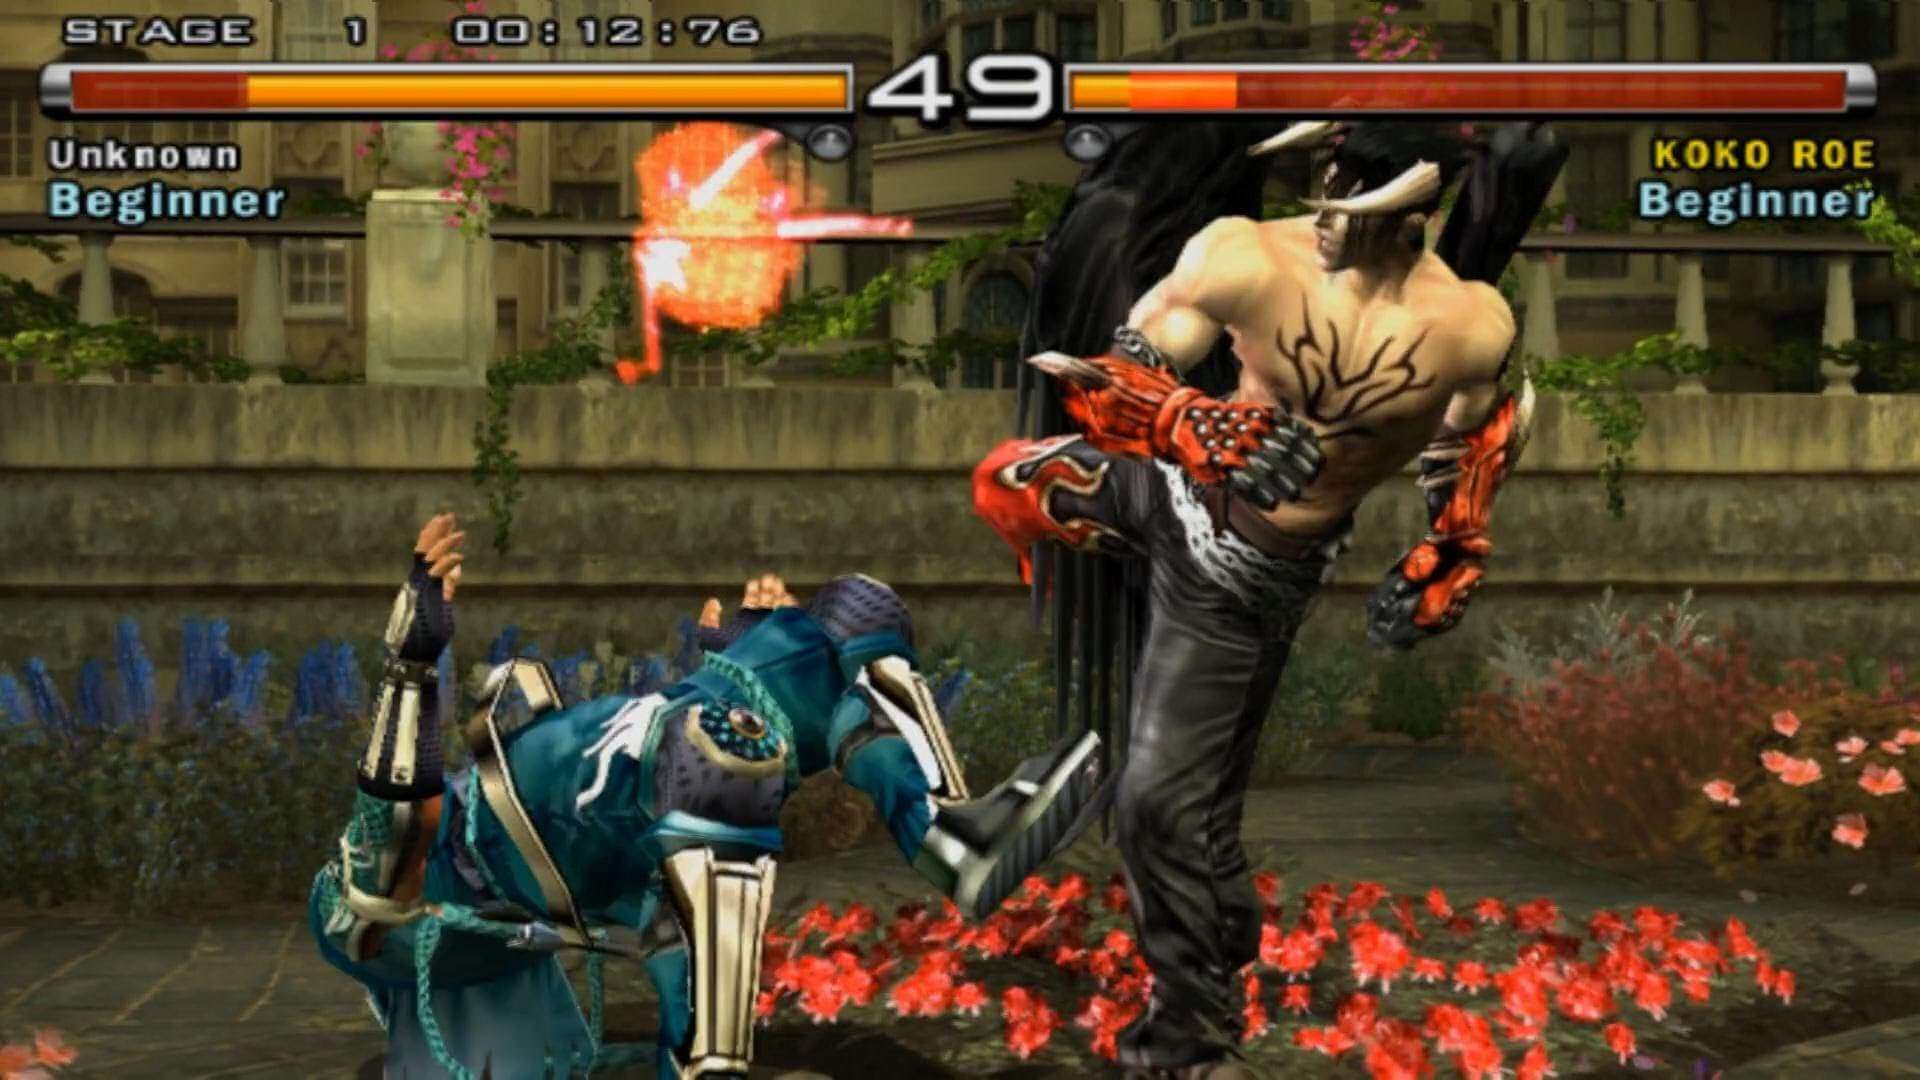 Tekken 6 Pc Game Full Version Free Download ~ All About PC